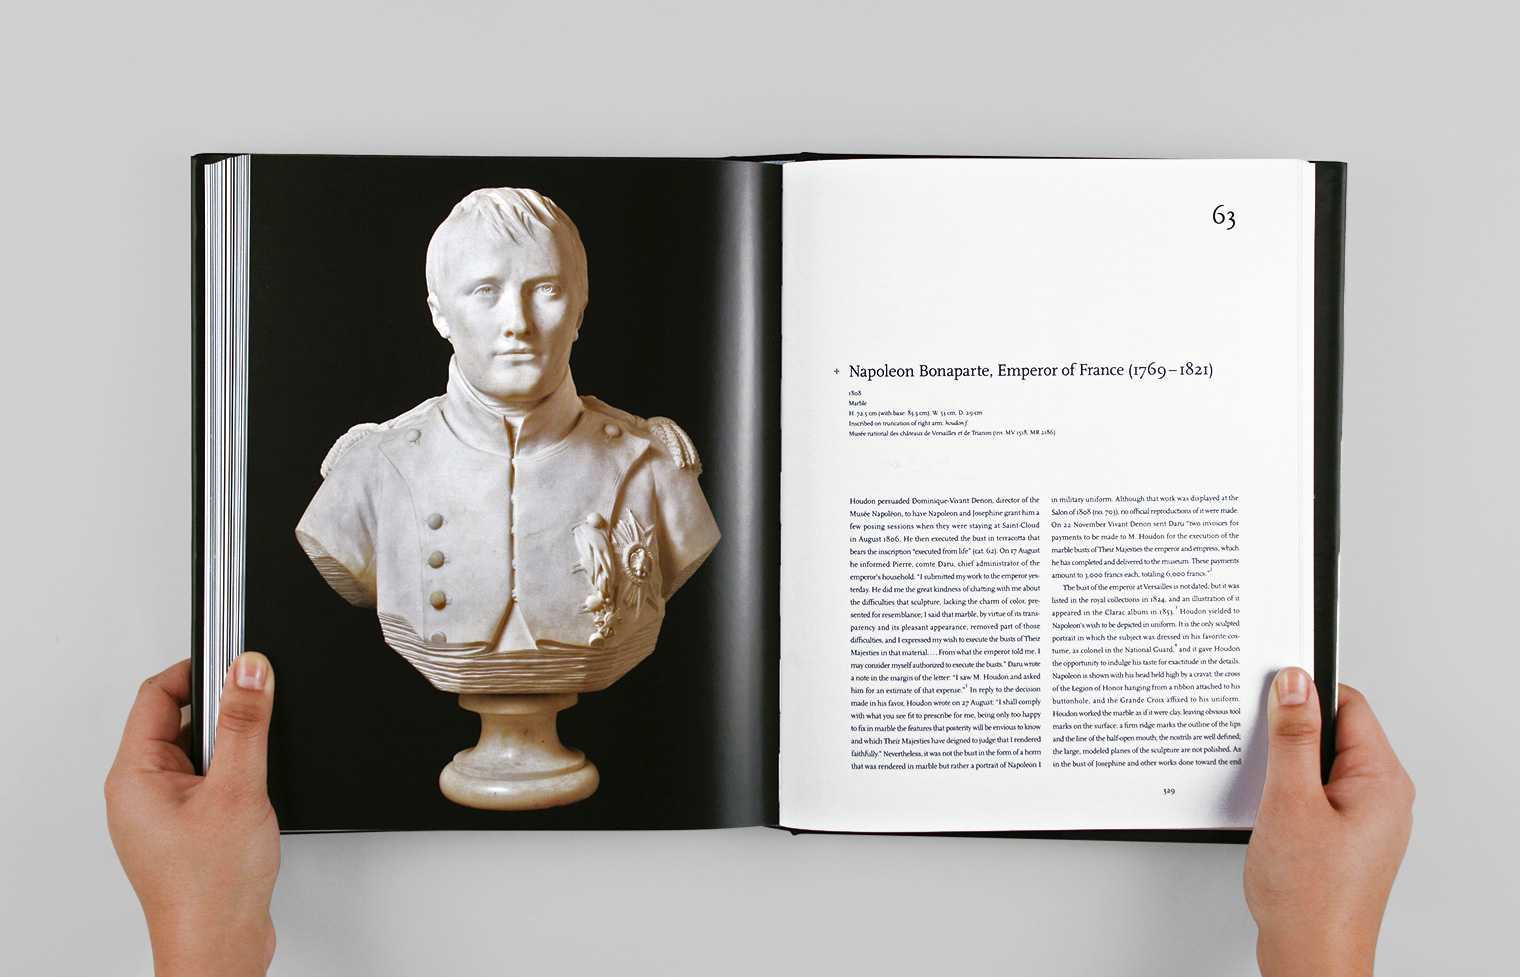 Catalogue entry 63 features a bust of Napoleon Bonaparte.